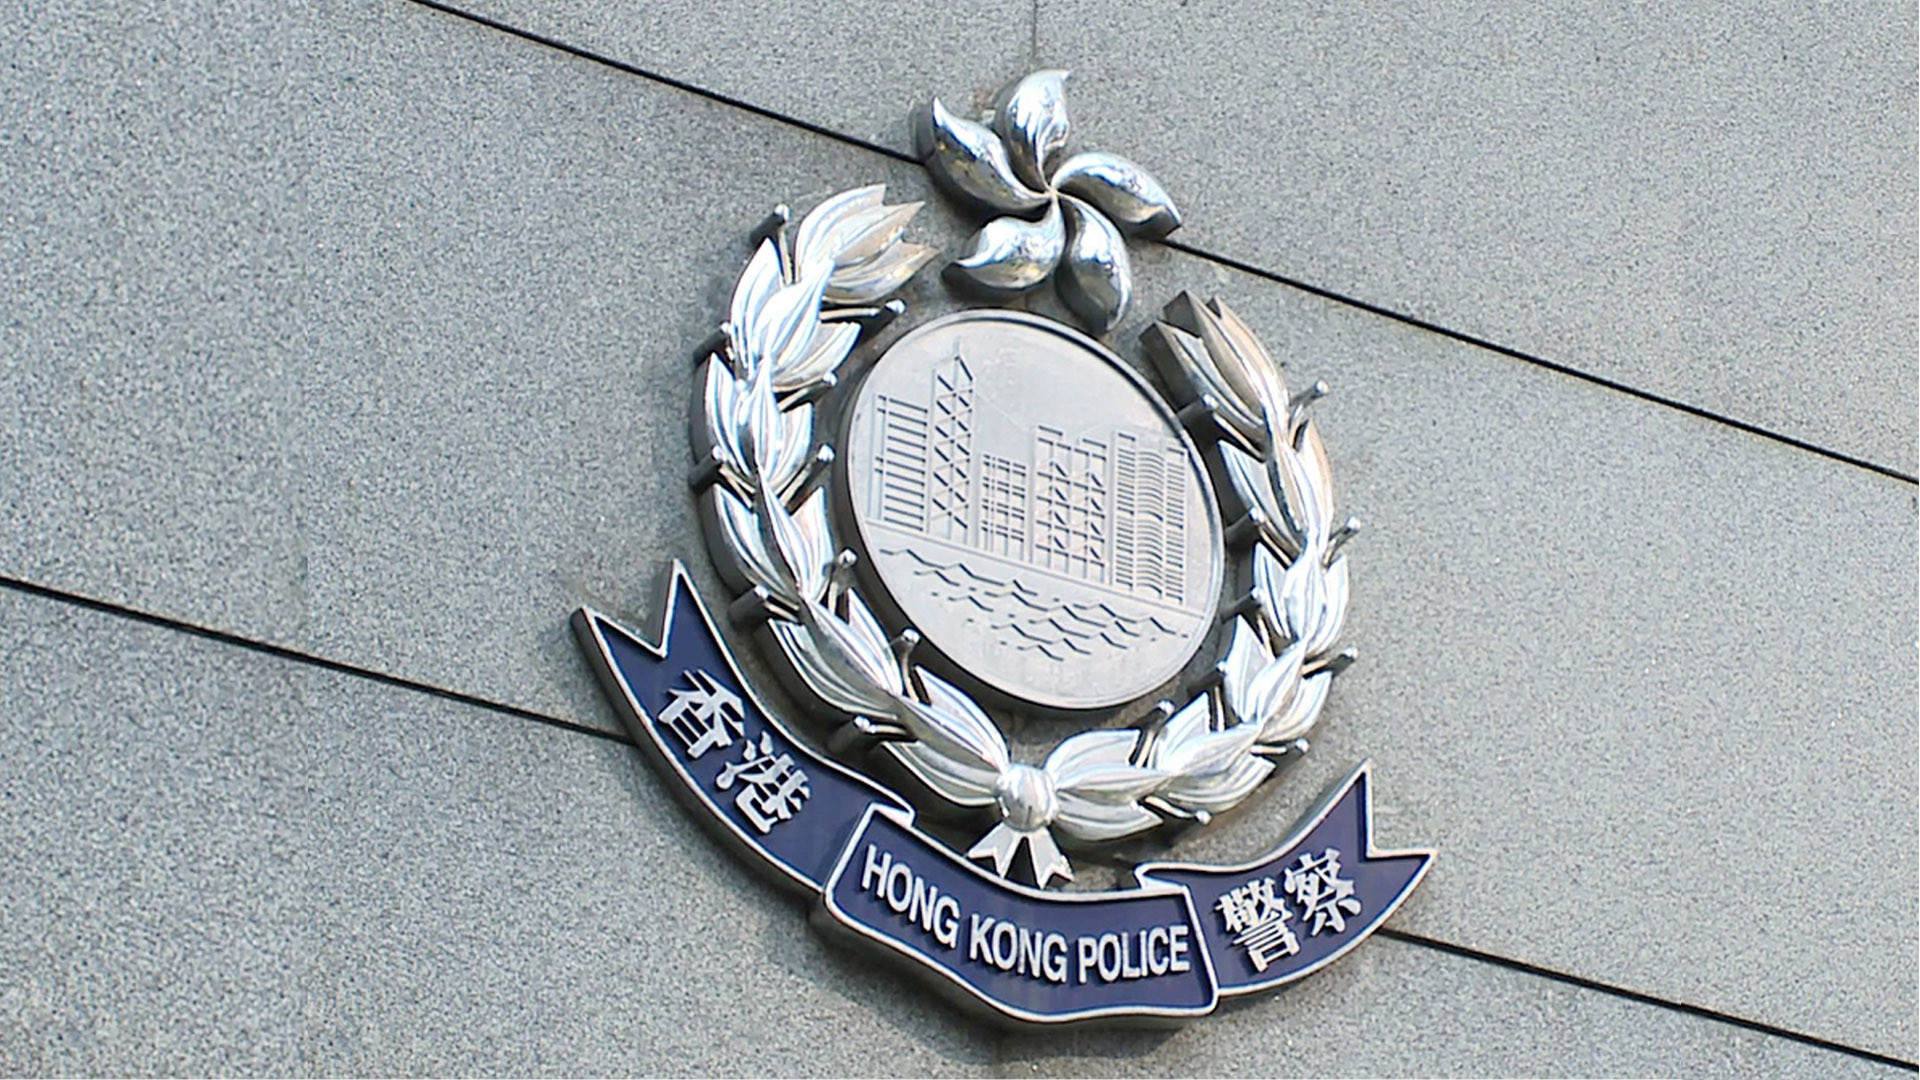 About 230 people arrested over illegal assembly in Hong Kong: police